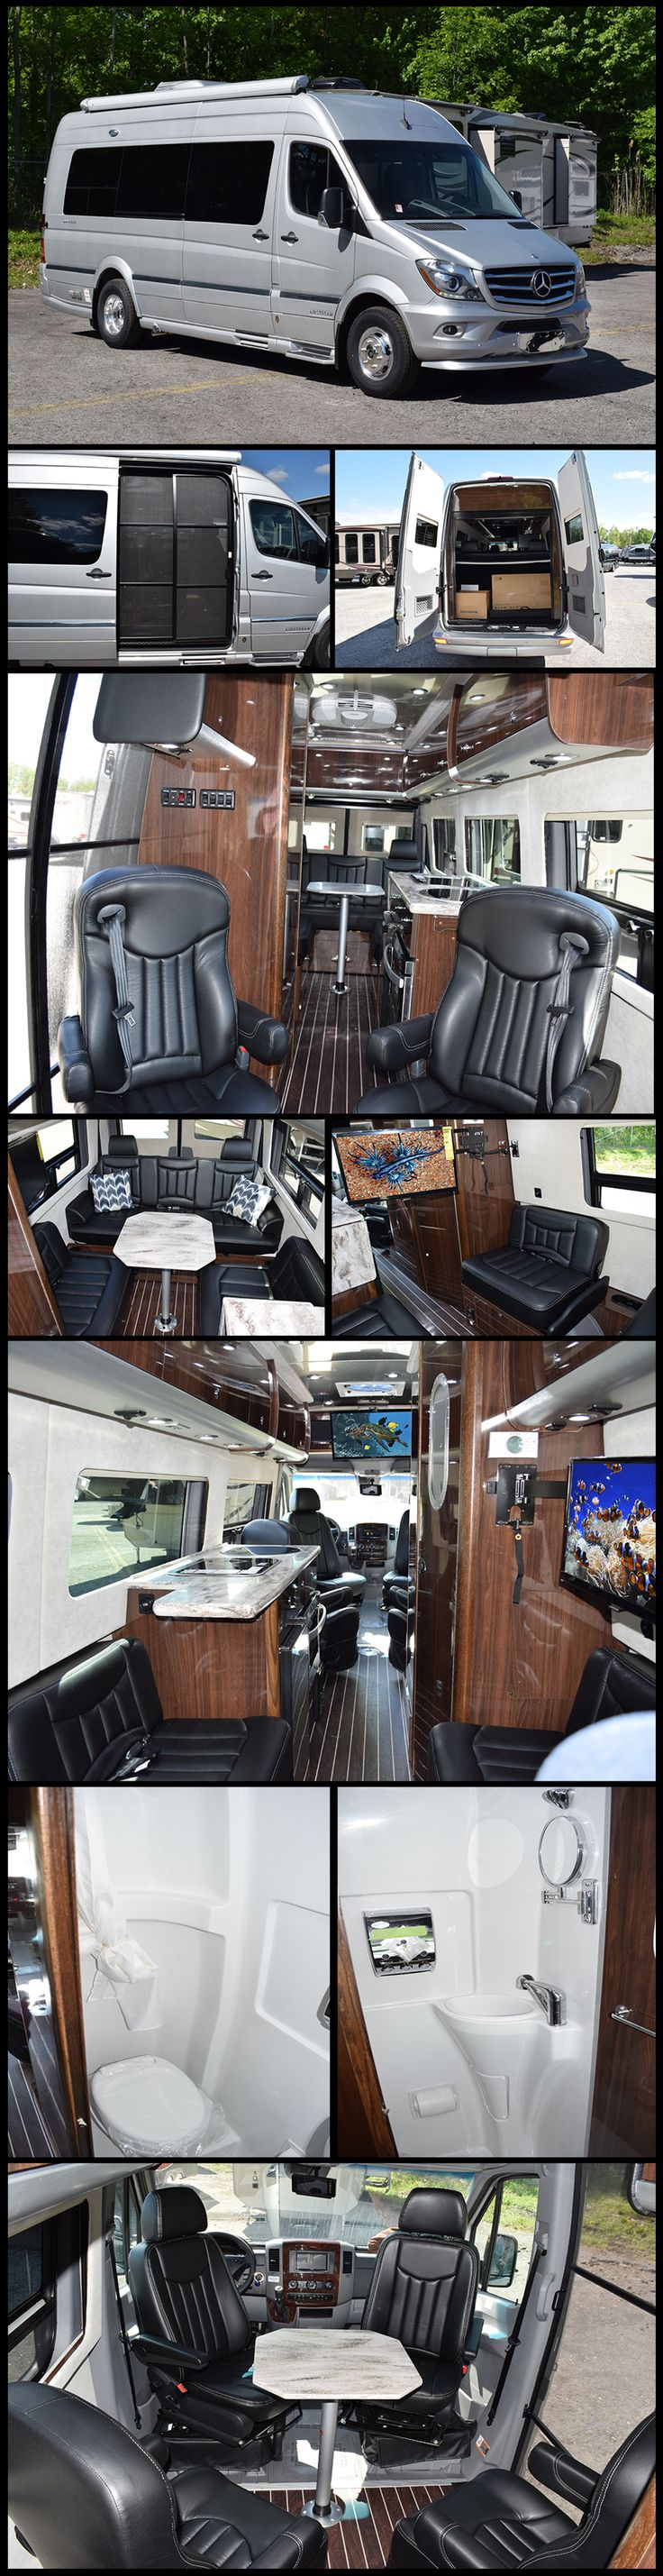 Your journey will be a smooth one in this 2016 Airstream INTERSTATE LOUNGE EXT Class B. A highly advanced composite flooring system and fiberglass insulation offer superior strength, durability, and isolation from road noise.